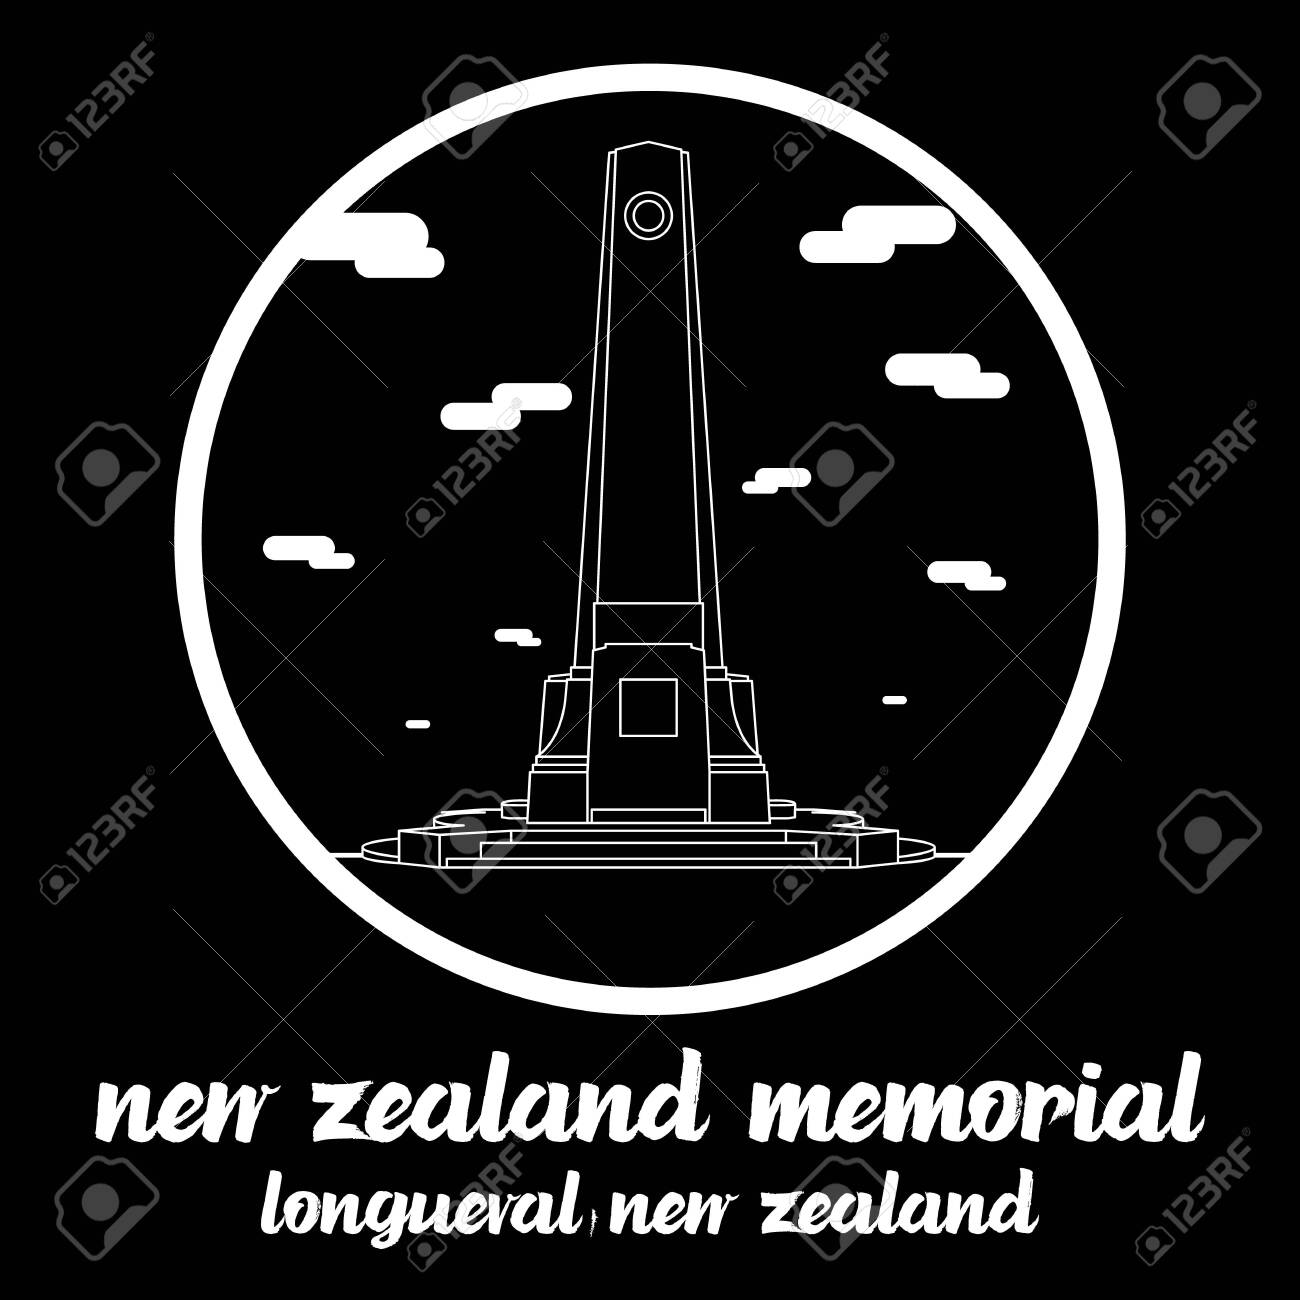 Circle icon line New Zealand Memorial in Longueval New zealand. icon vector illustration - 133313383